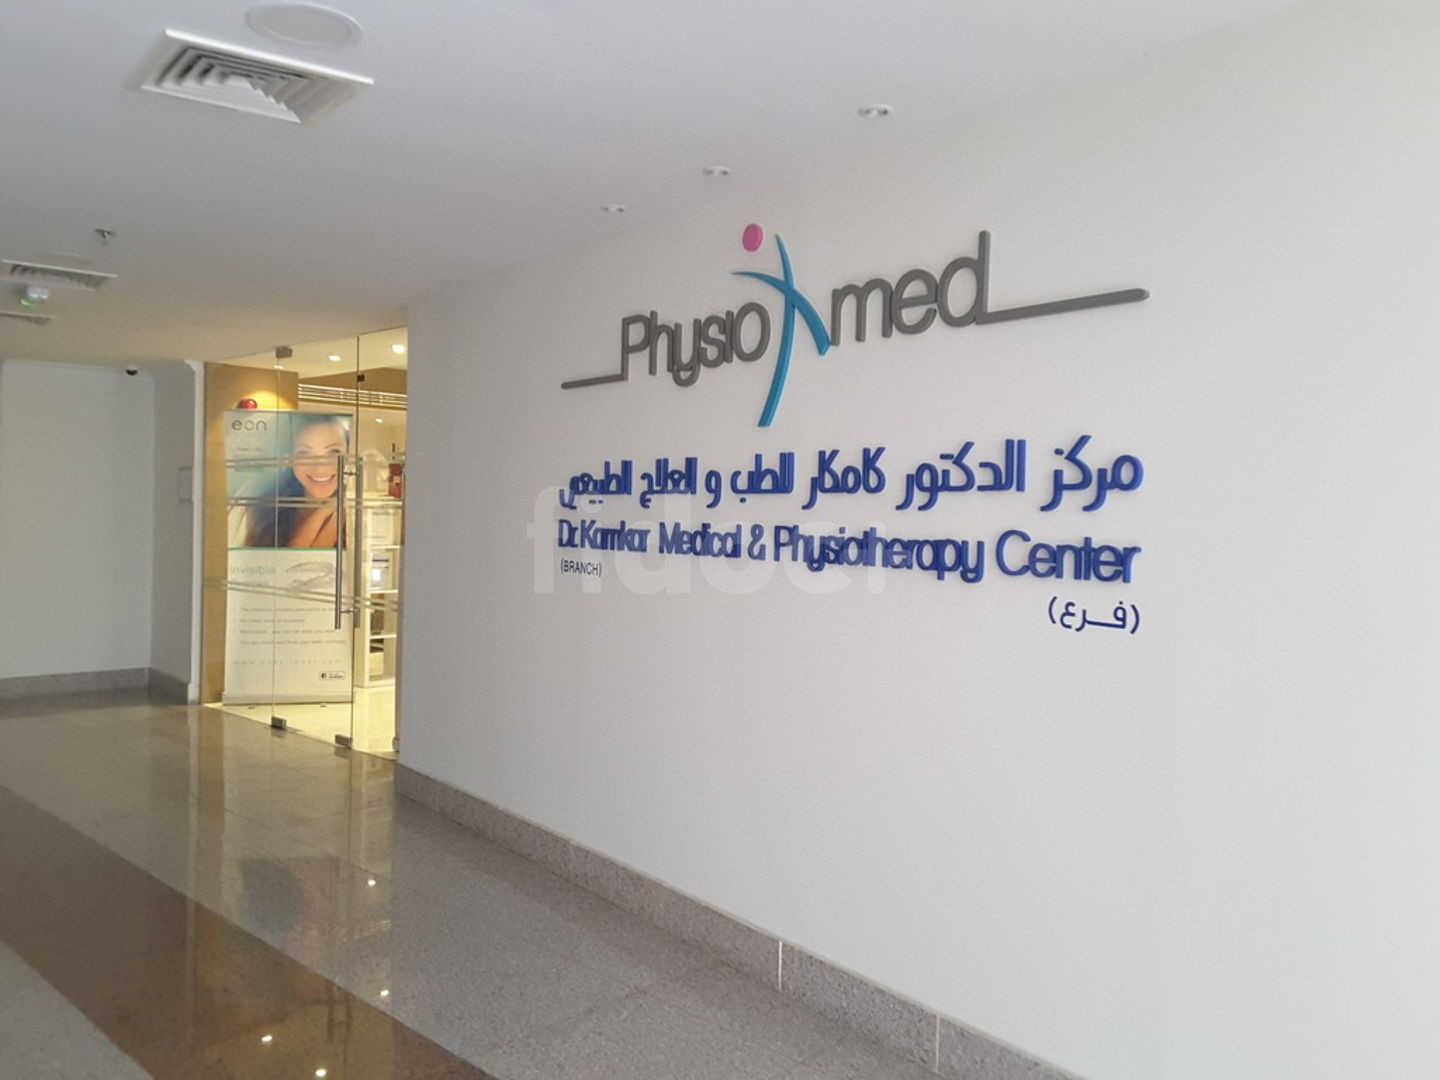 Dr. Kamkar Medical & Physiotherapy Center, Dubai